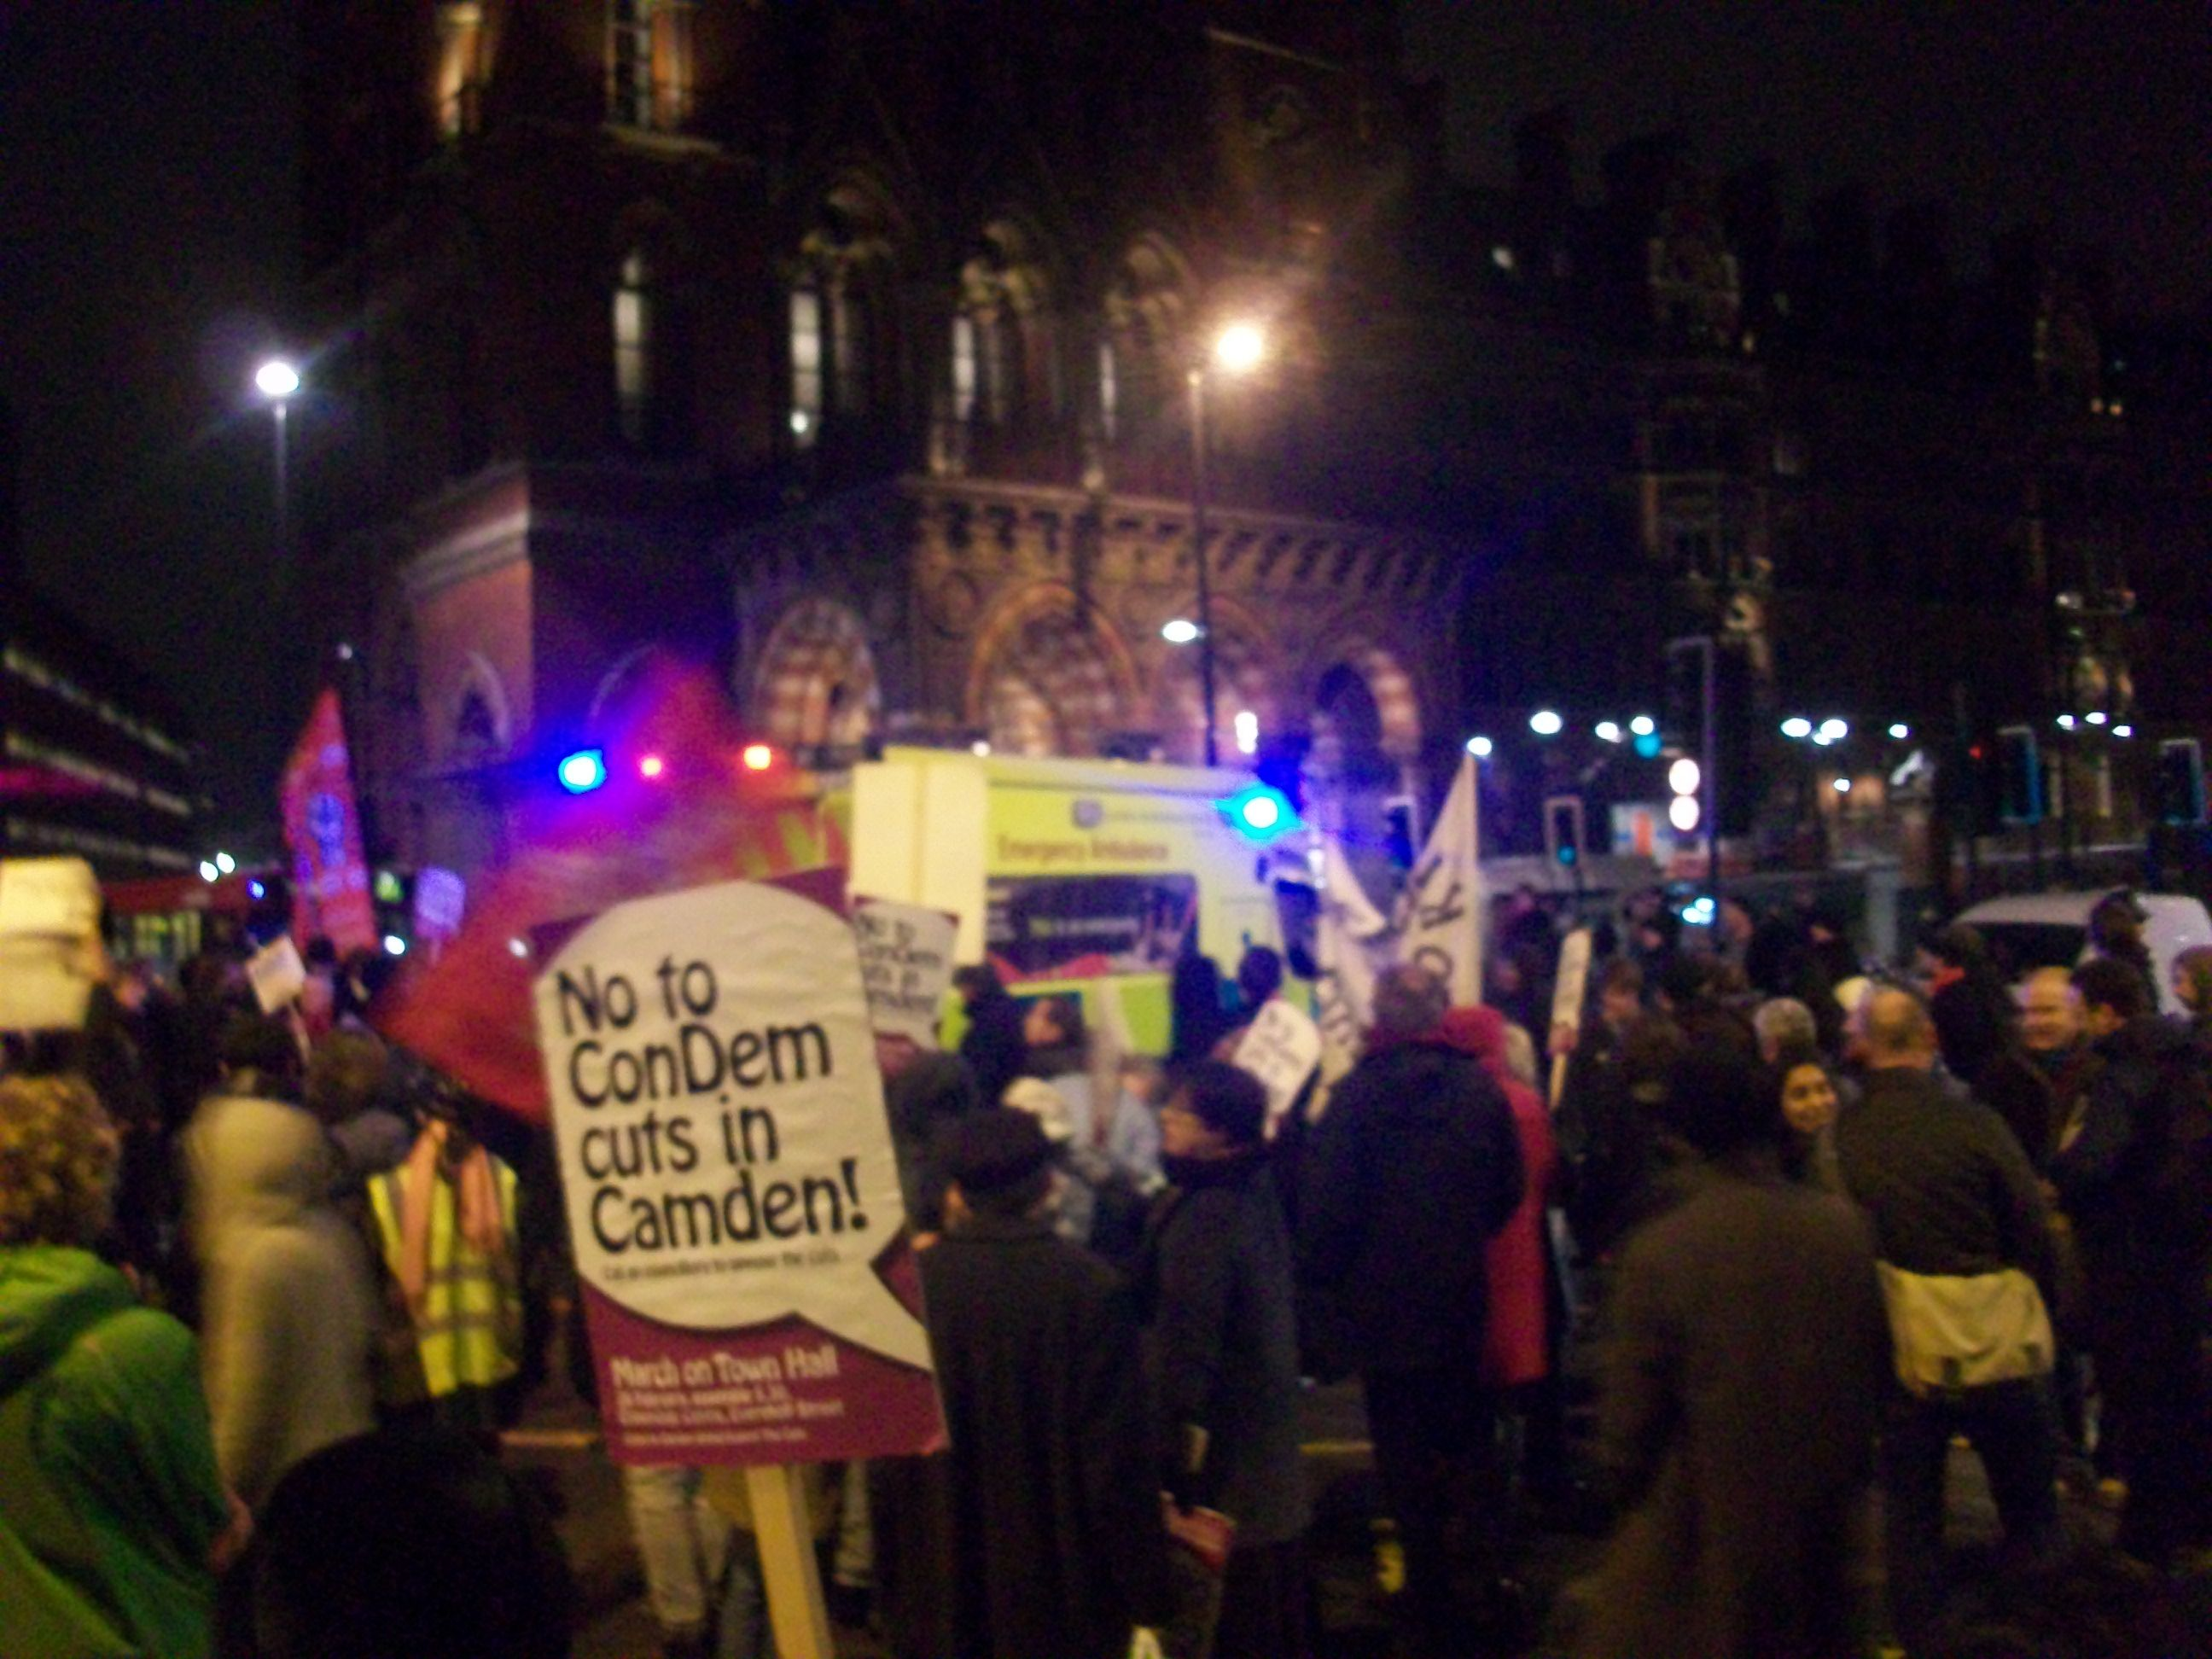 """""""No to ConDem cuts in Camden"""" reads a placards"""